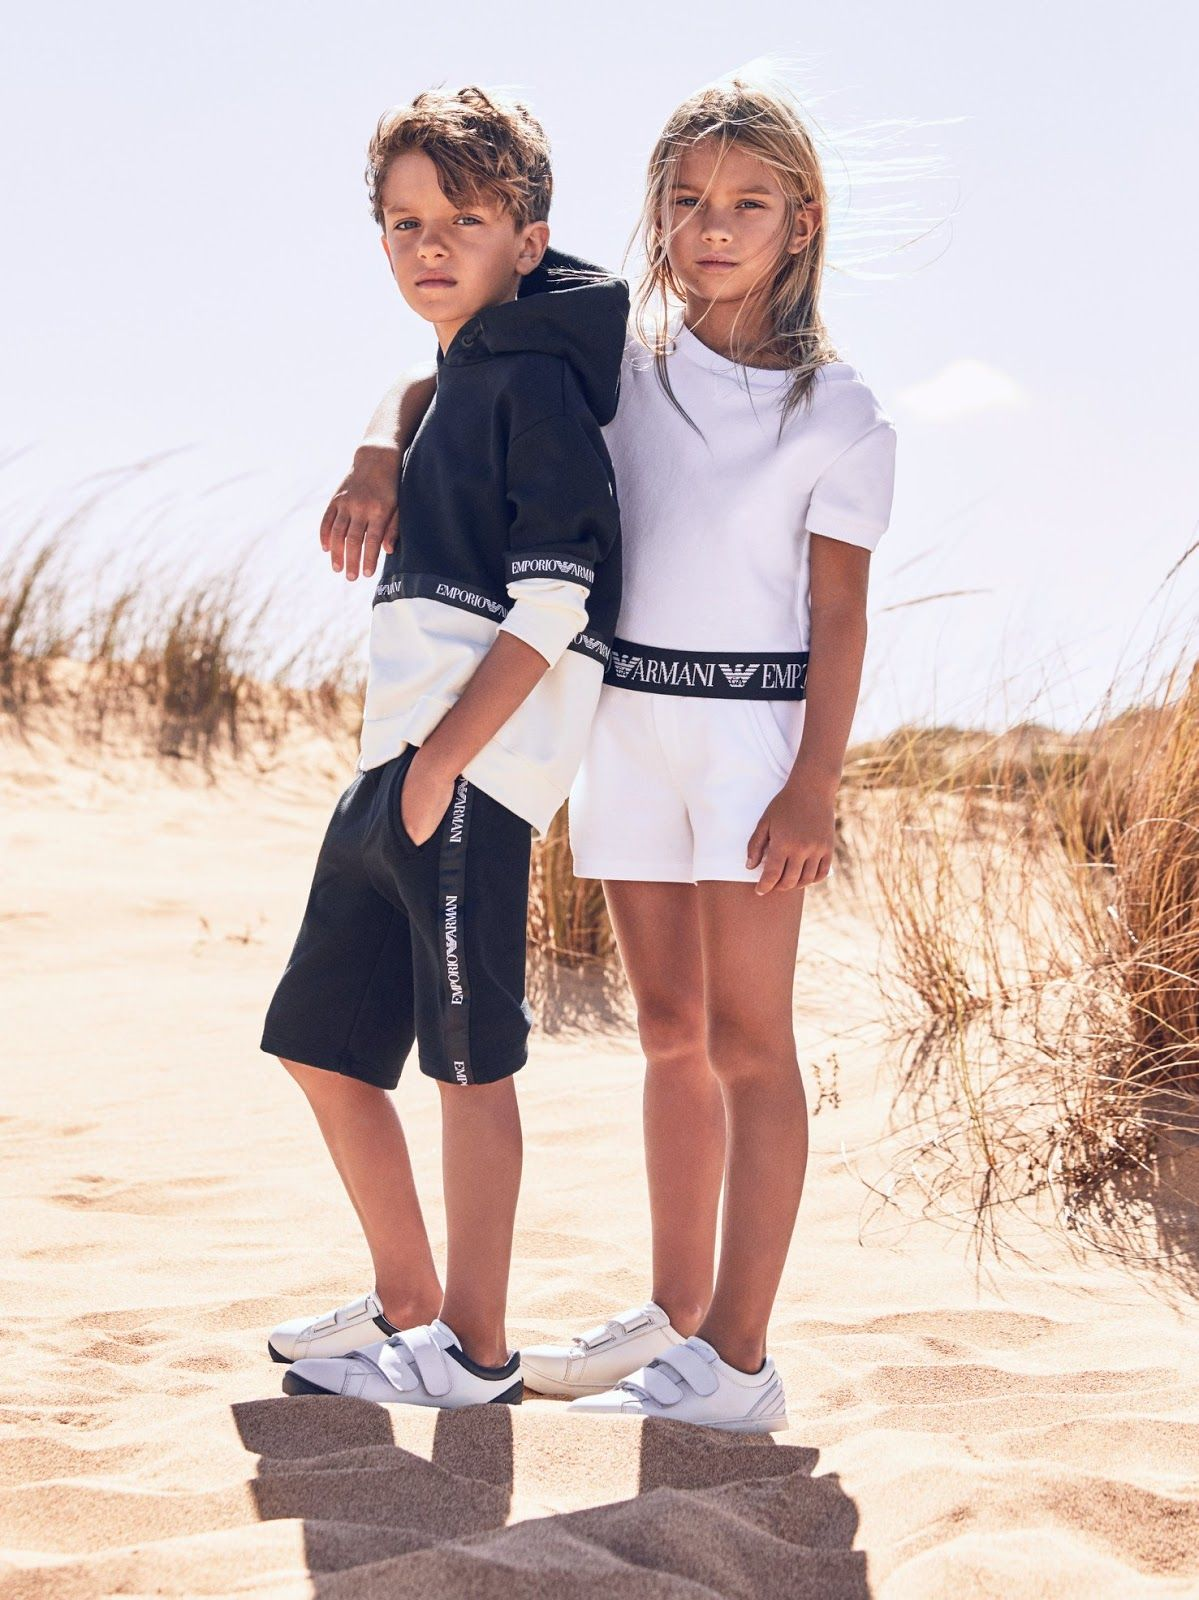 Emporio Armani Kids - The ''moda Italiana'' for the little ones! Emporio Armani Kids, sharp, classy and elegant styles for boys and girls from birth to 16 years. Complete range of clothing and accessories available in store.